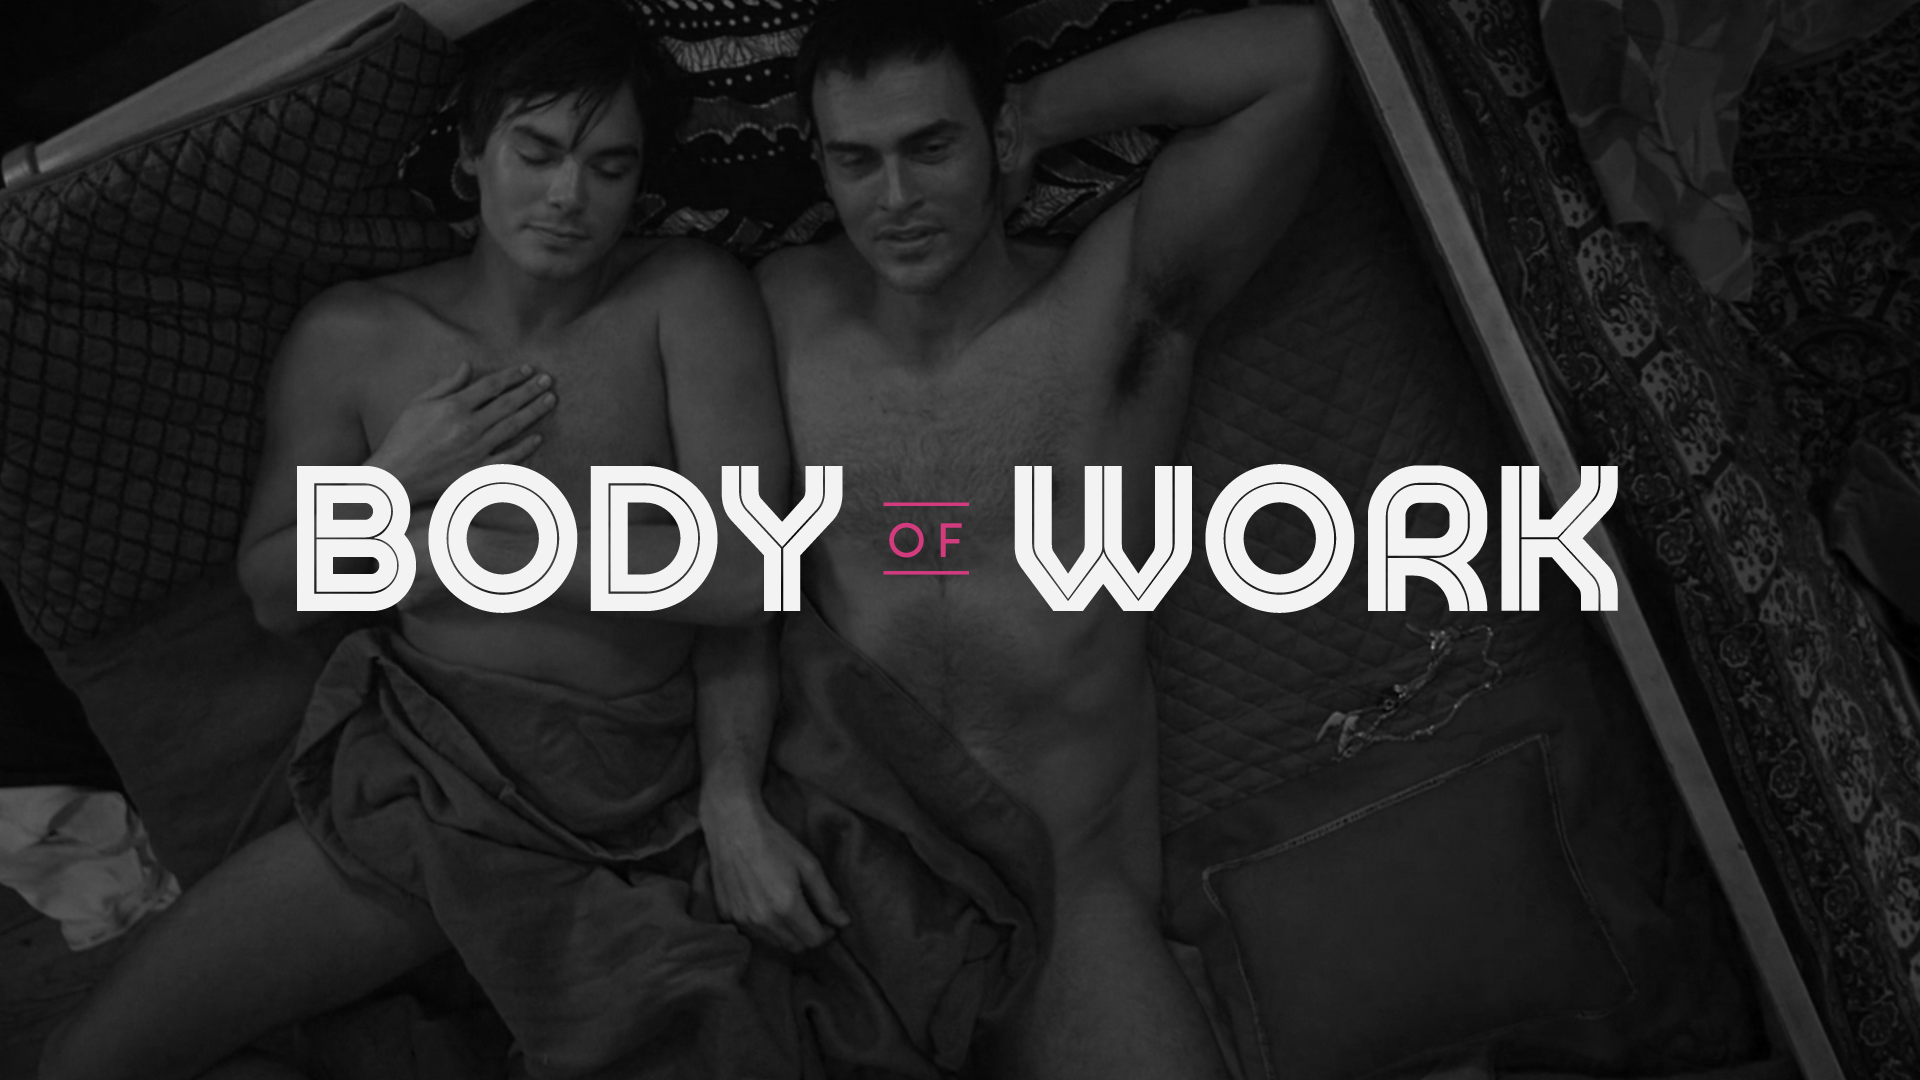 Bodyofwork cheyenne jackson final 00 00 02 12 still002 nude preview image